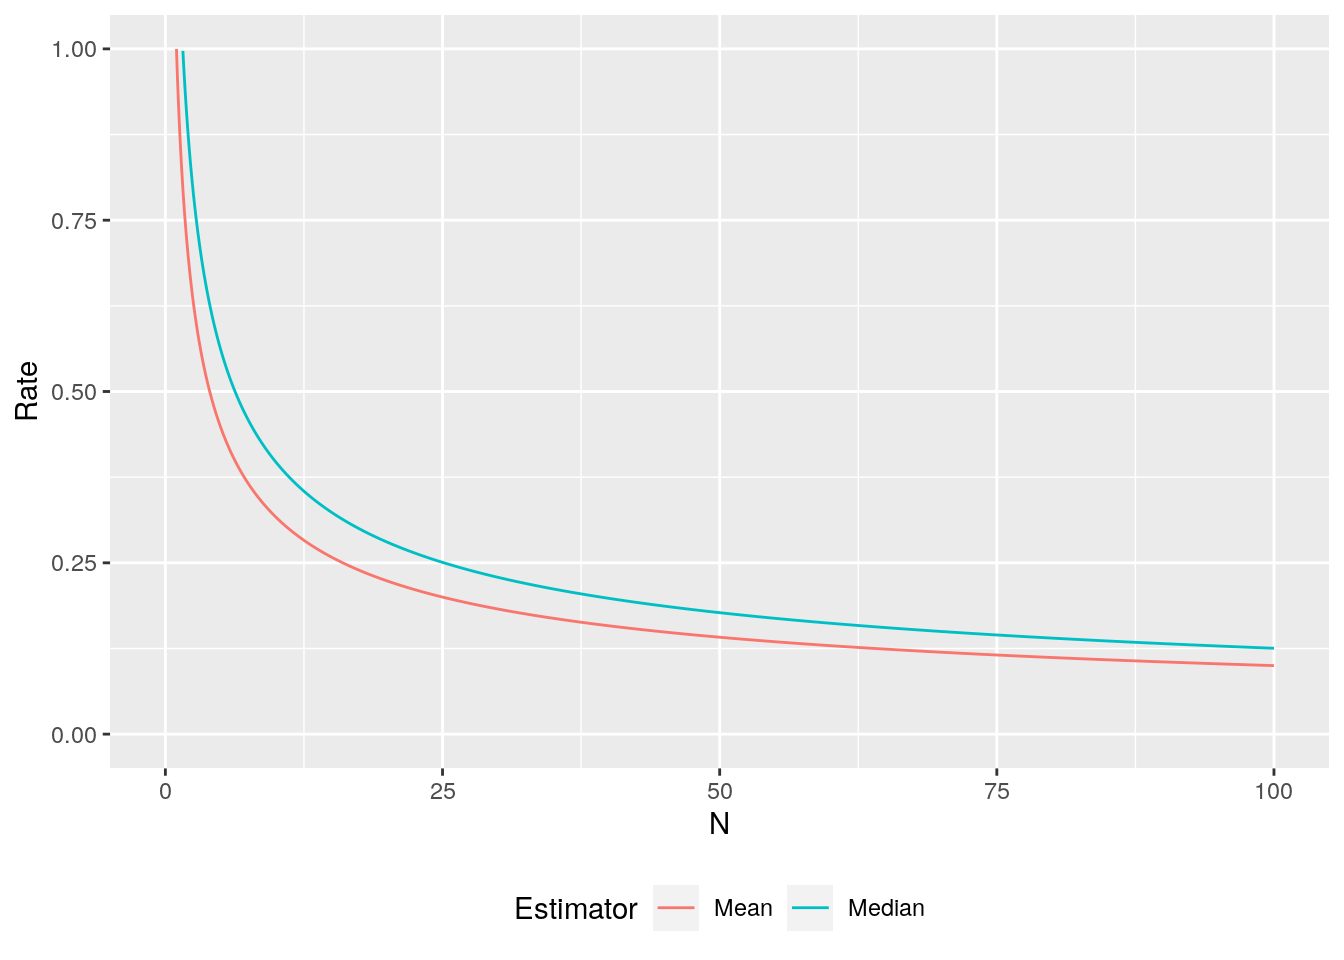 Simulated distribution of sample mean and median estimators for different sized samples.